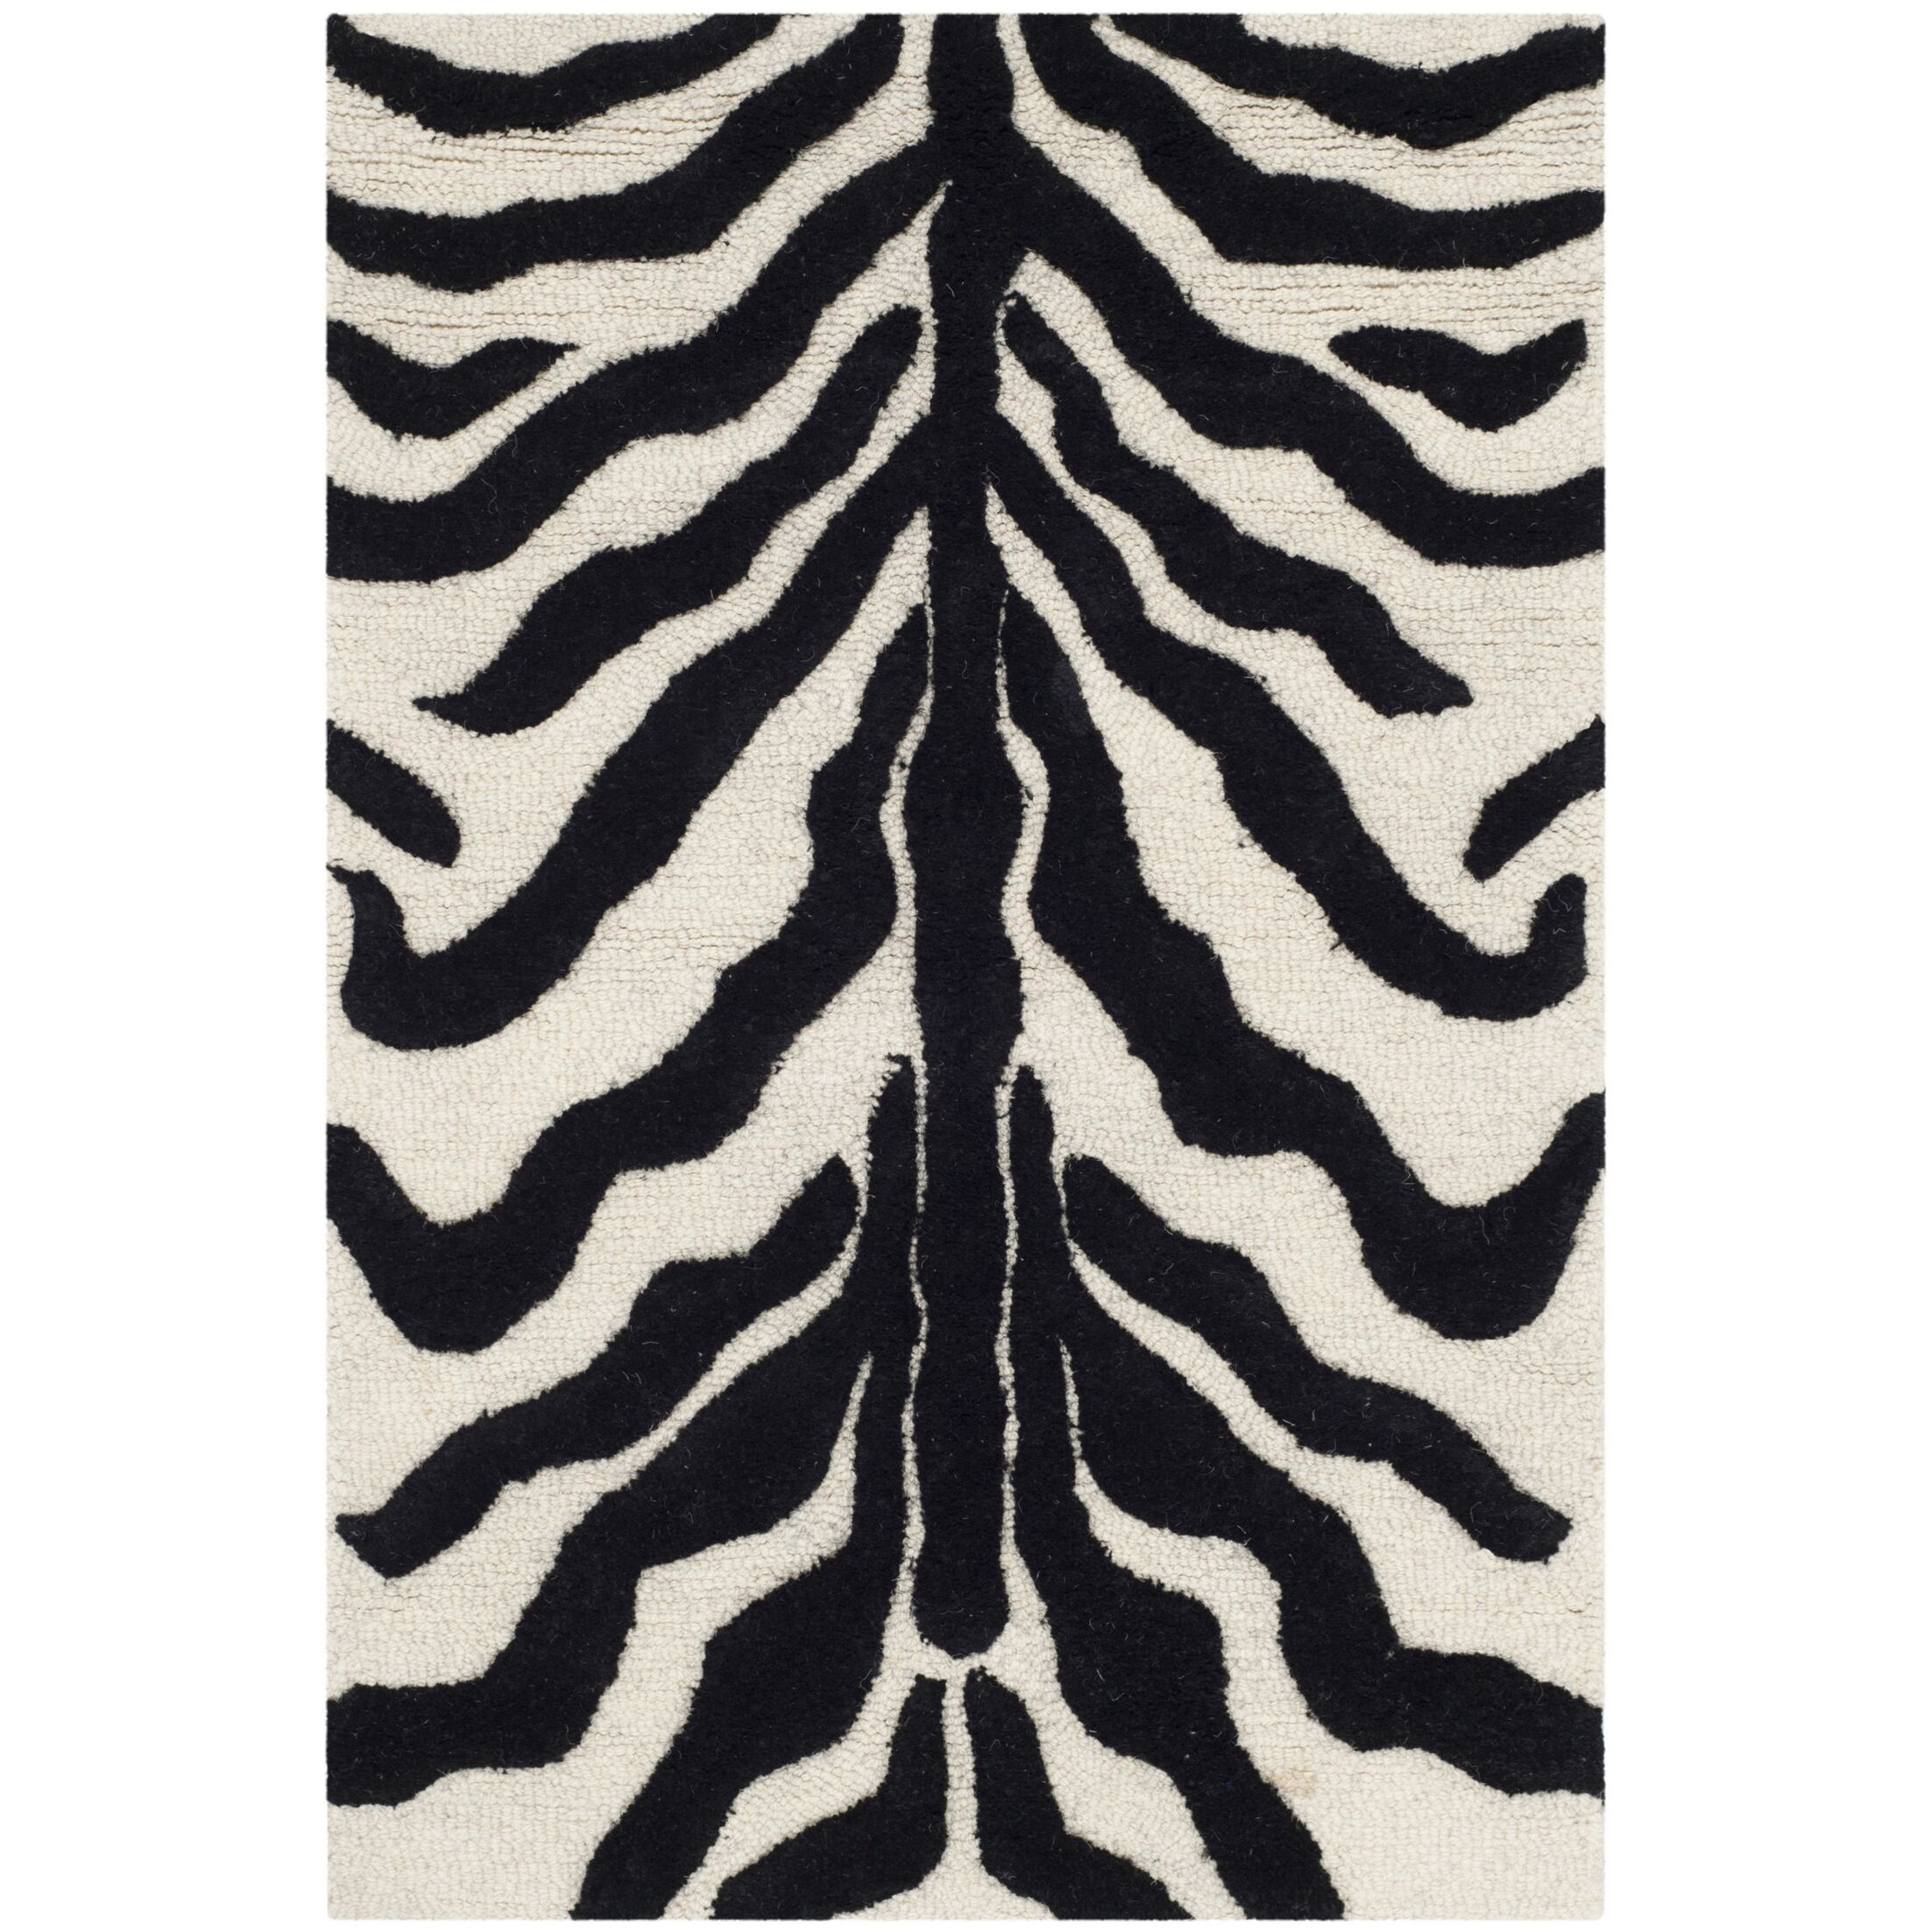 Roloff Hand-Tufted Wool Ivory/Black Area Rug Rug Size: Rectangle 3' x 5'